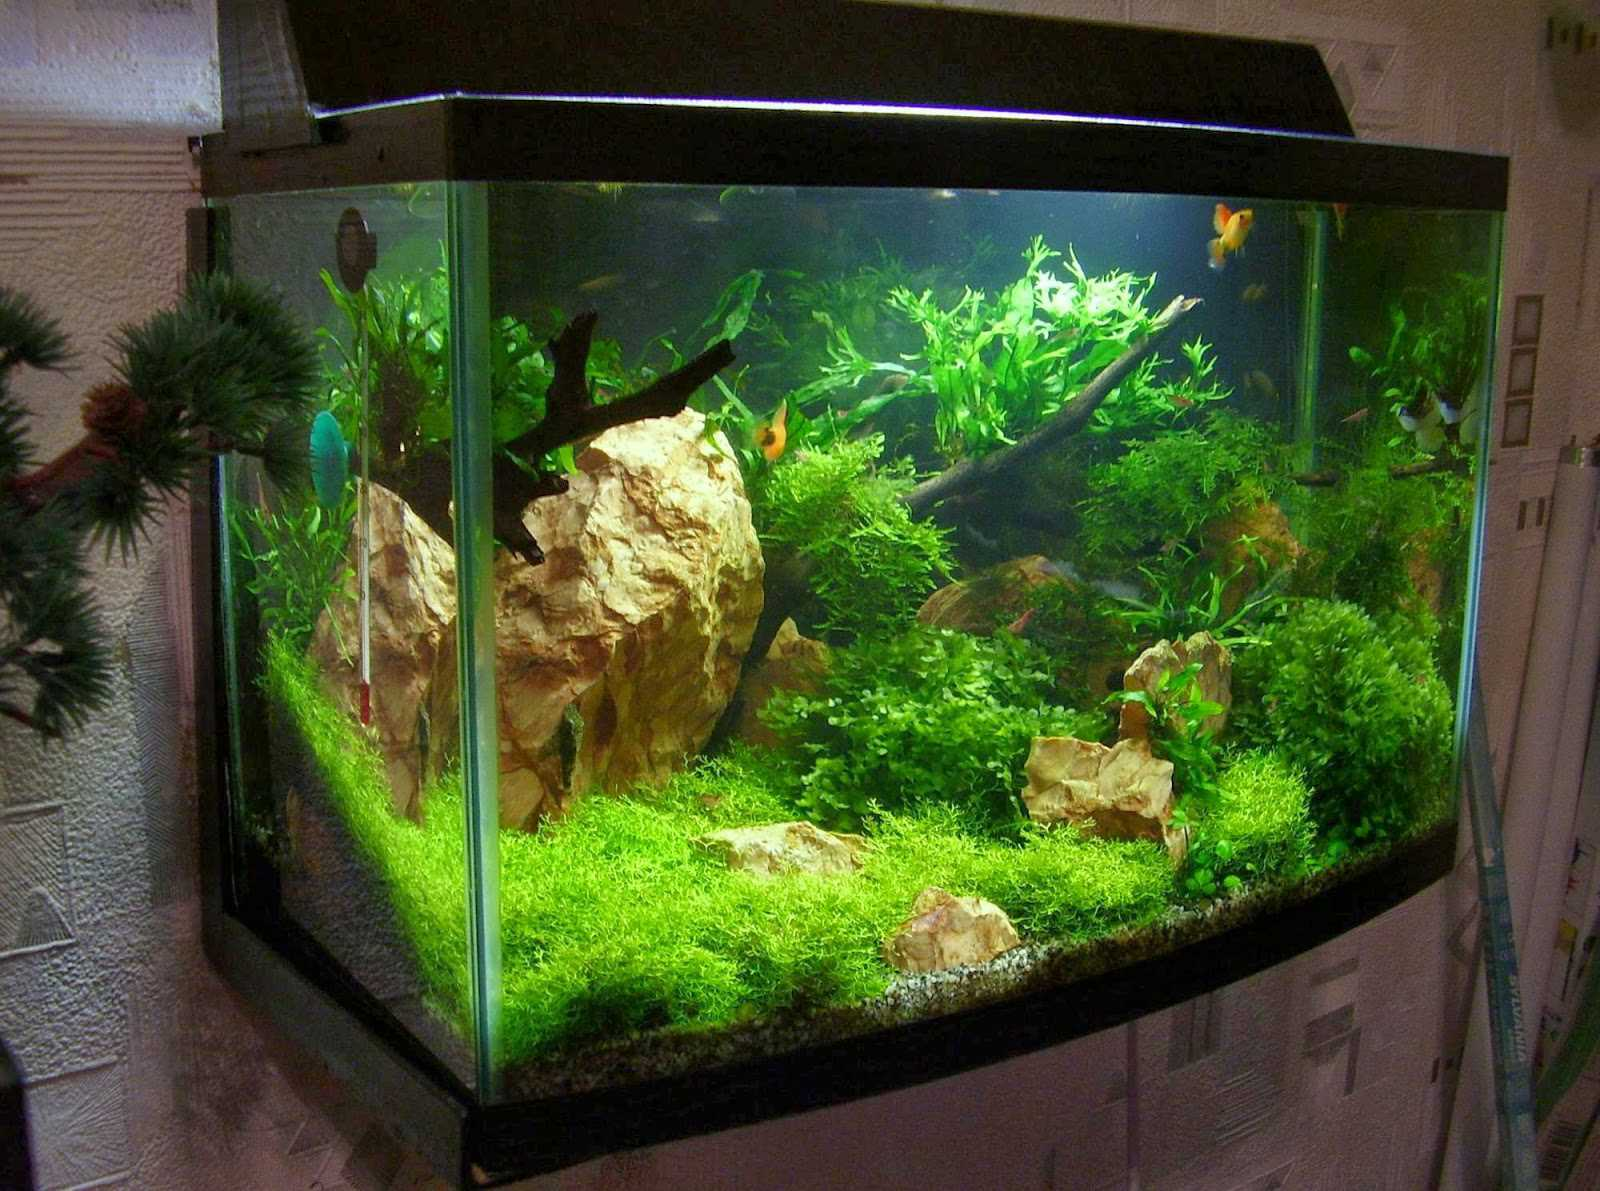 Moss overgrown aquarium with sandy colored stone